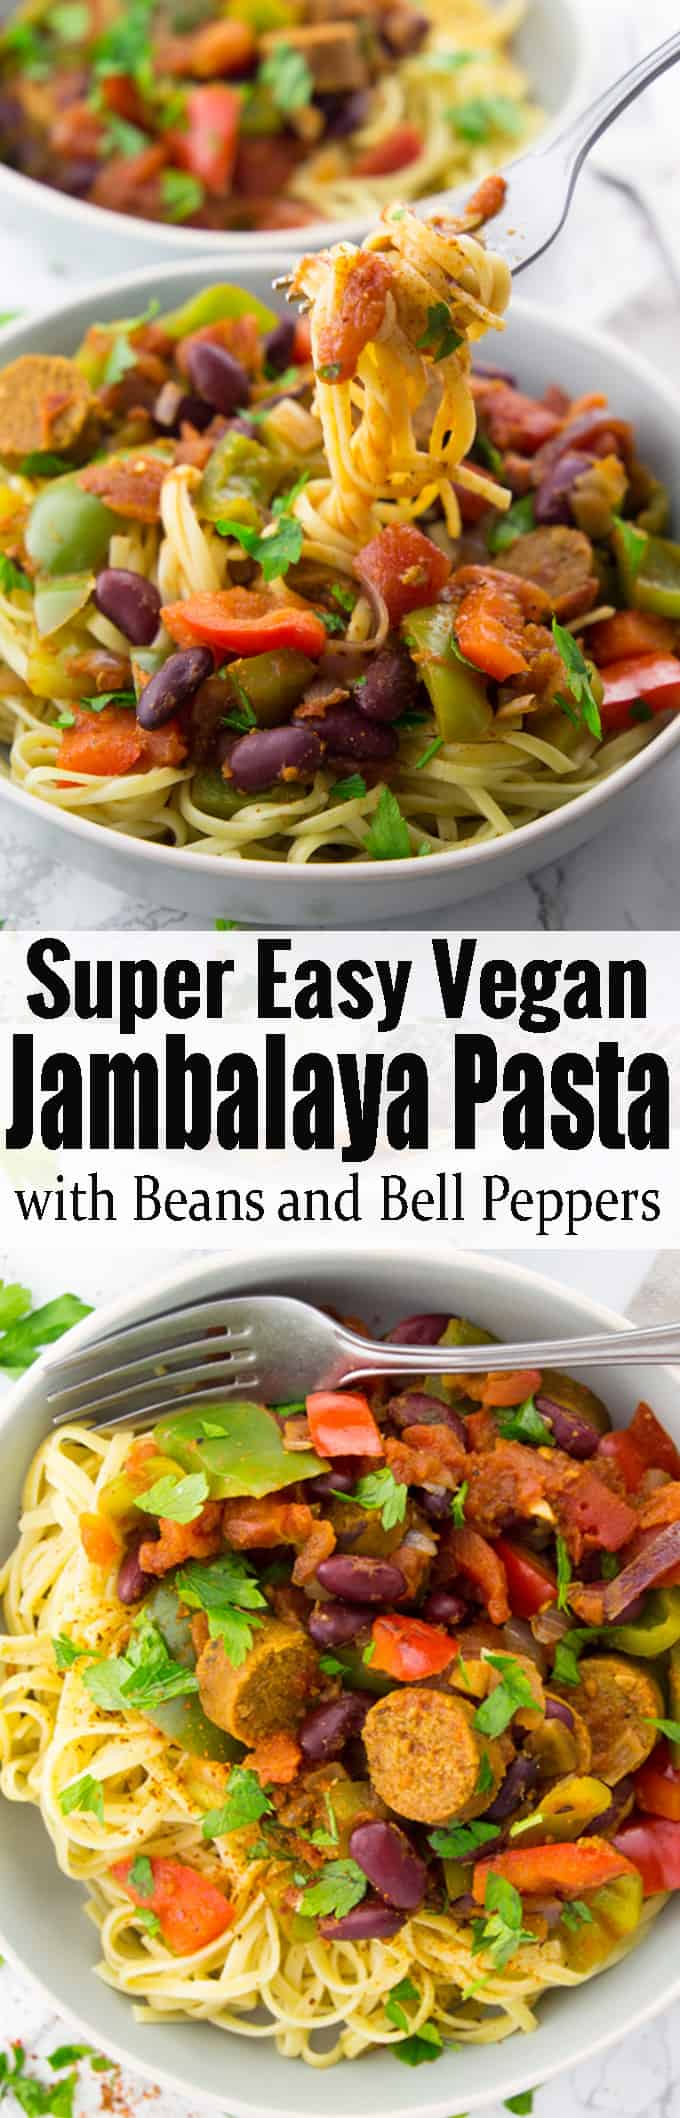 If you love the aromatic flavors of traditional jambalaya then this cajun jambalaya pasta recipe is for you! It's the perfect comfort food and makes such a great and easy weeknight dinner! For more vegan recipes check out veganheaven.org! #jambalaya #pasta #vegan #veganrecipes